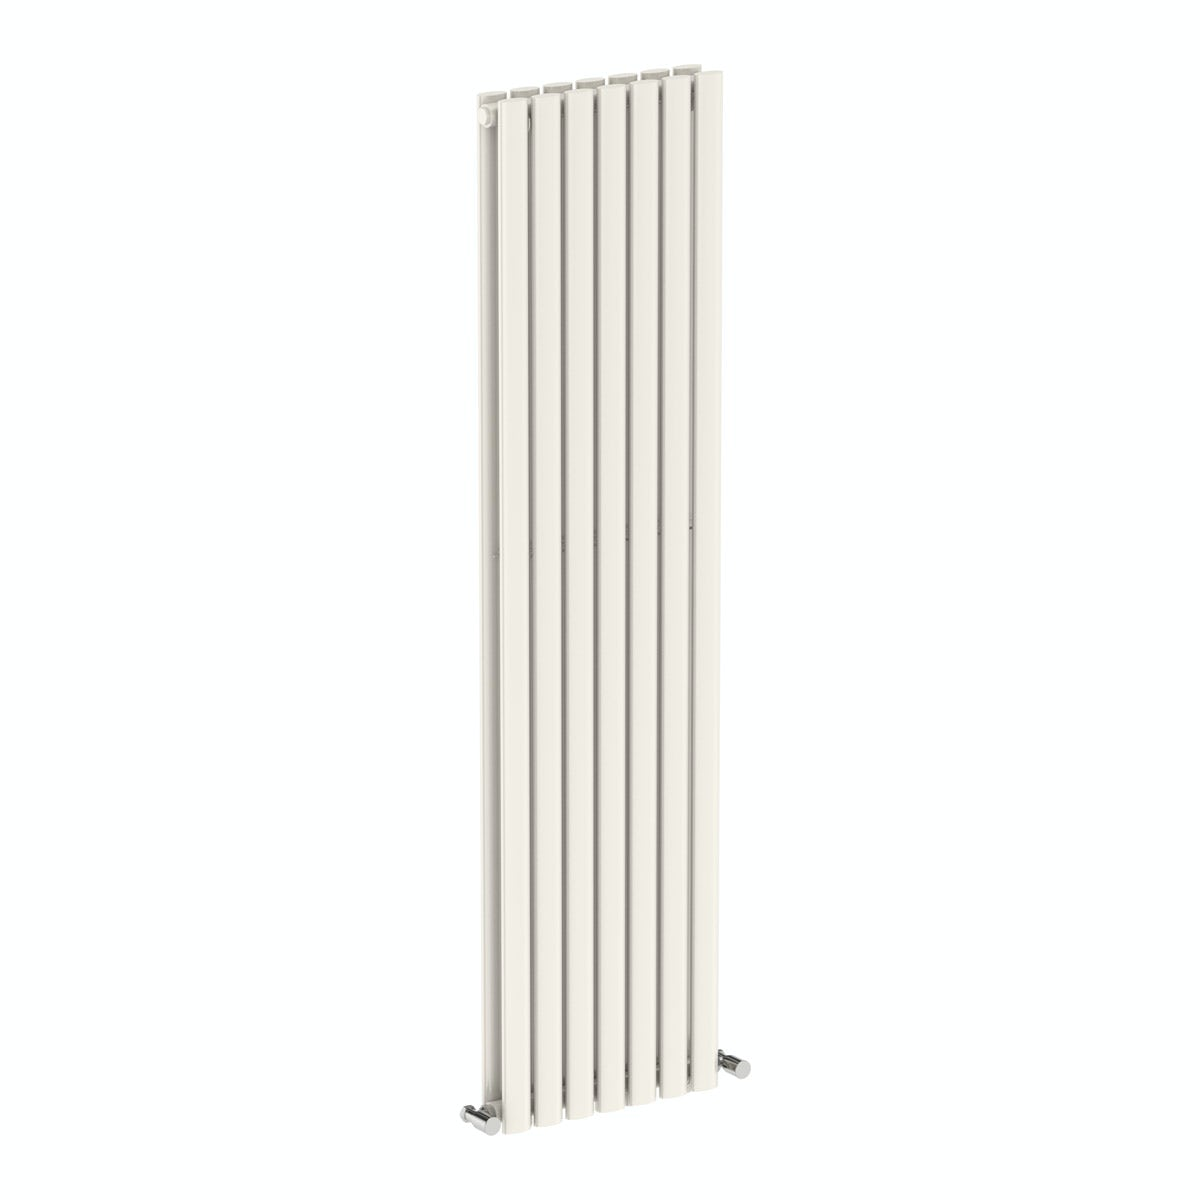 Mode Tate white double vertical radiator 1600 x 406